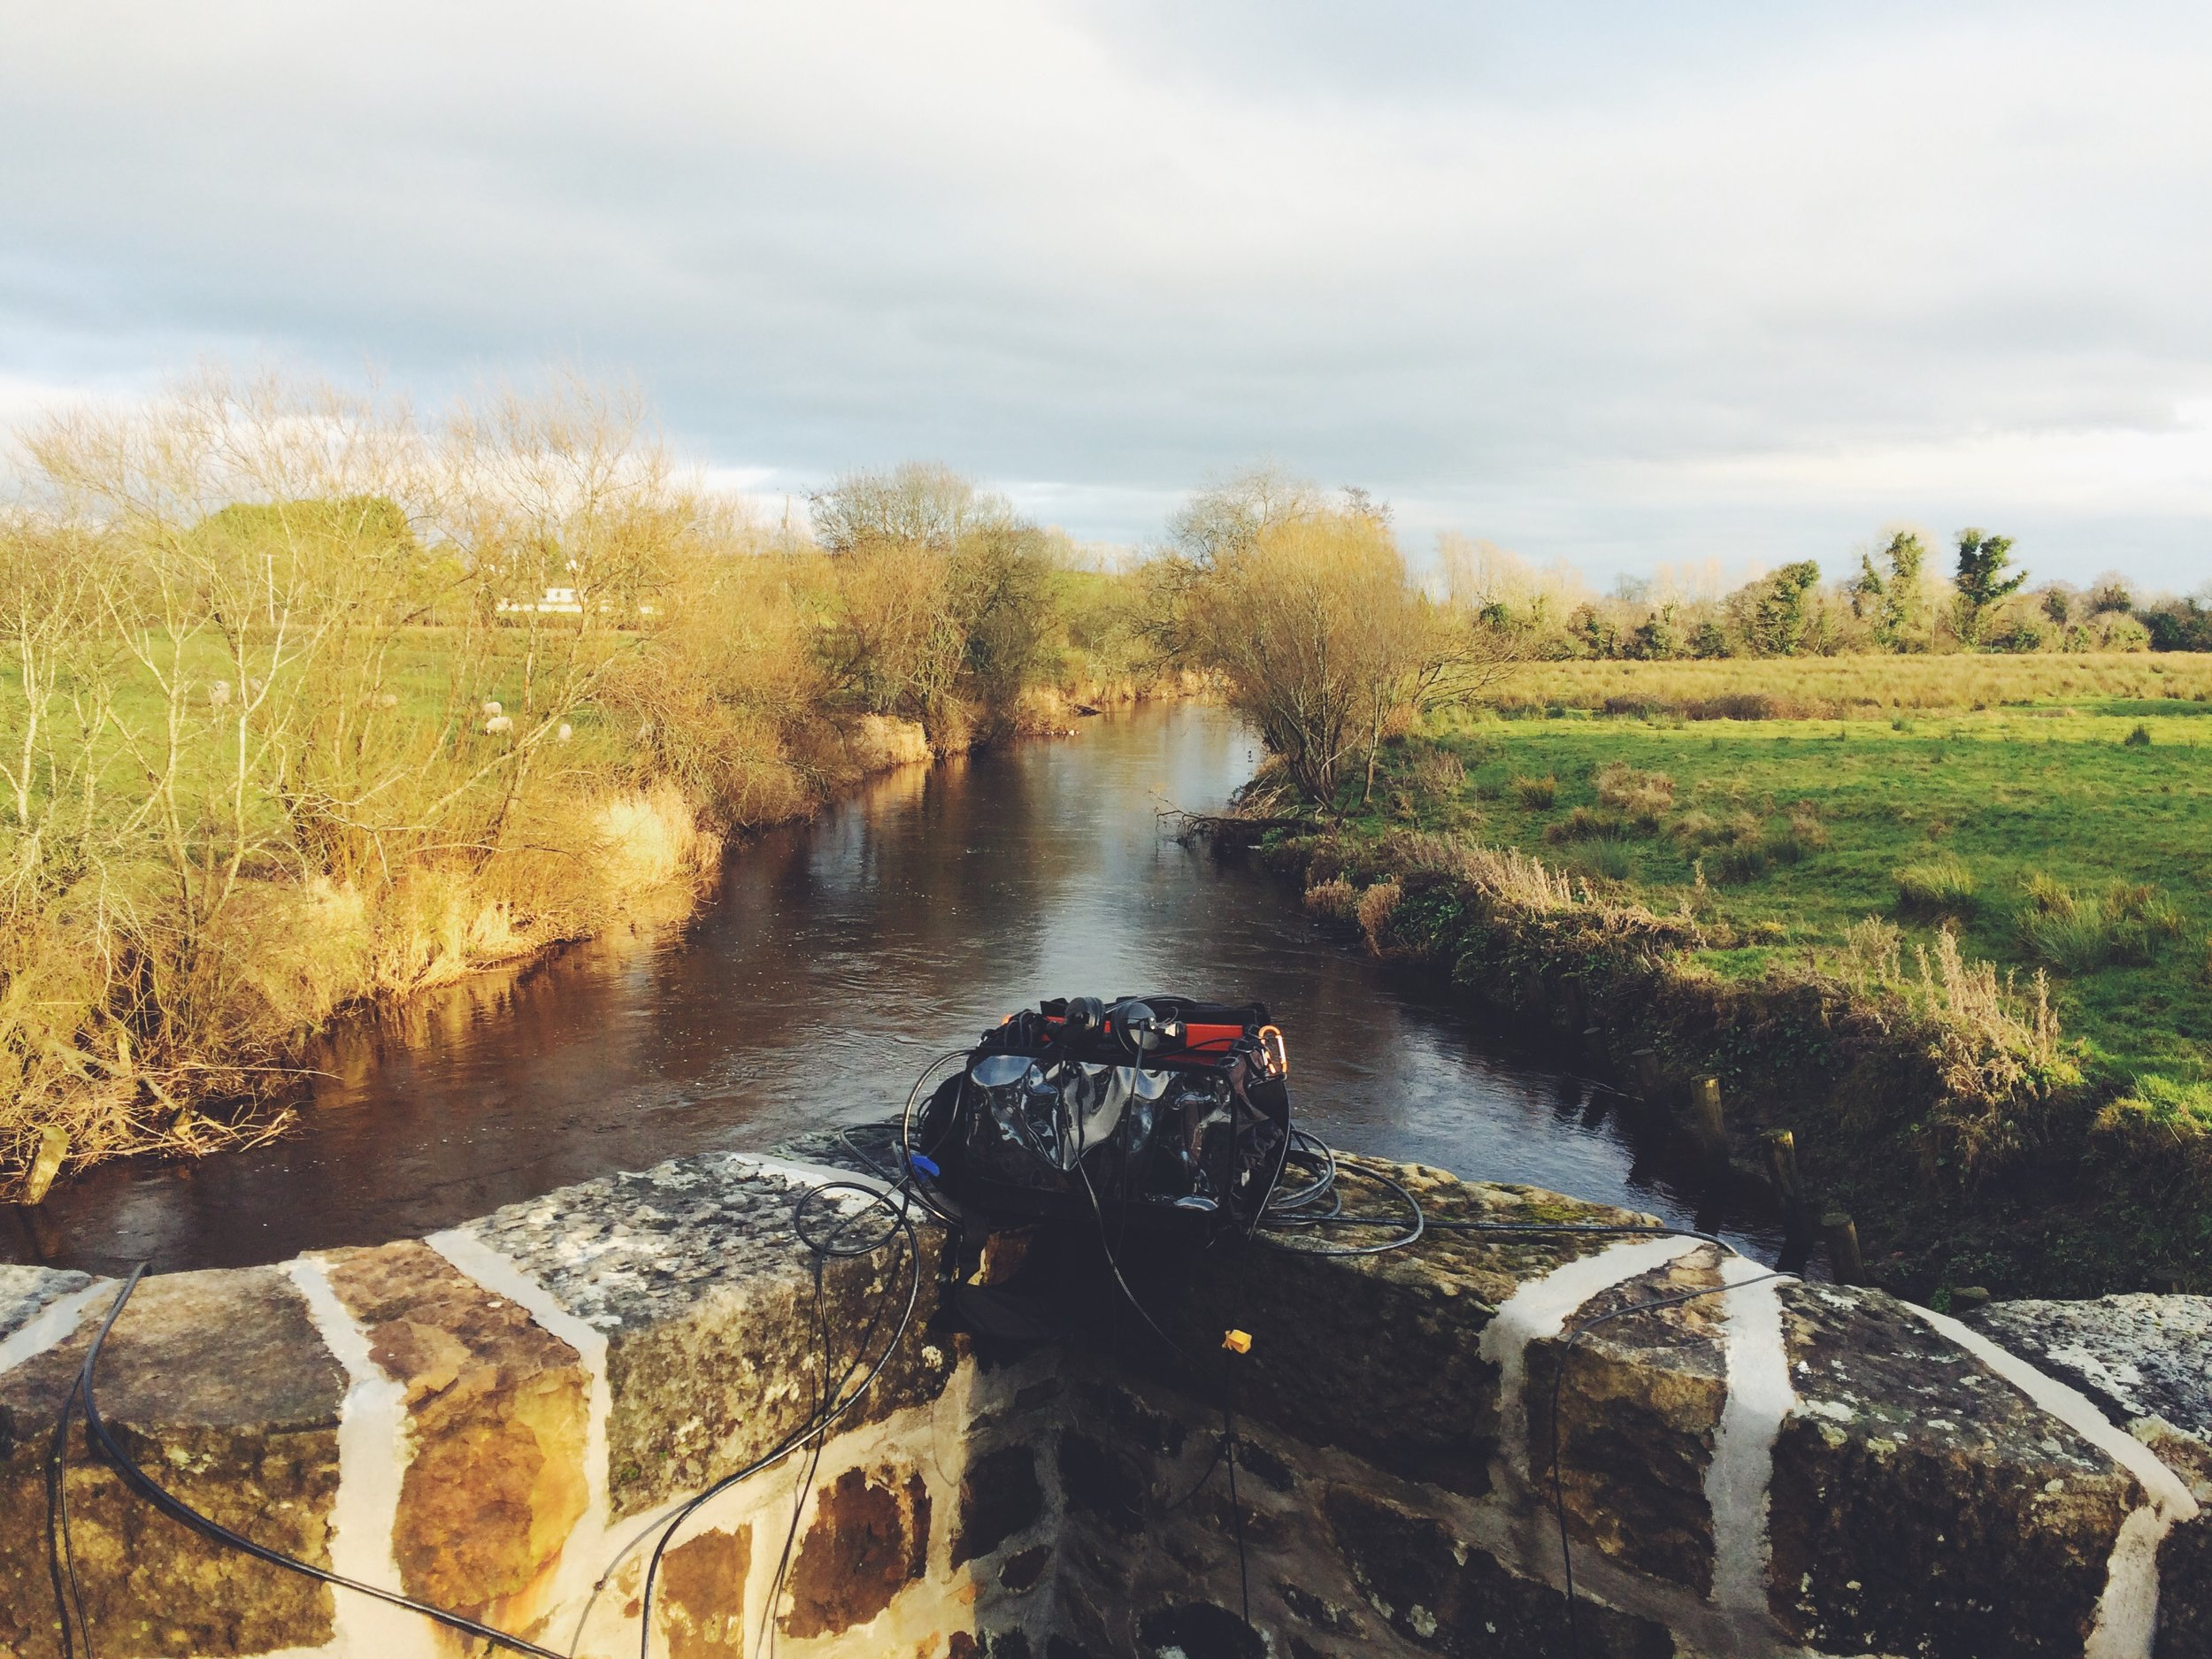 The Arney river from Arney bridge in County Fermanagh, Northern Ireland.